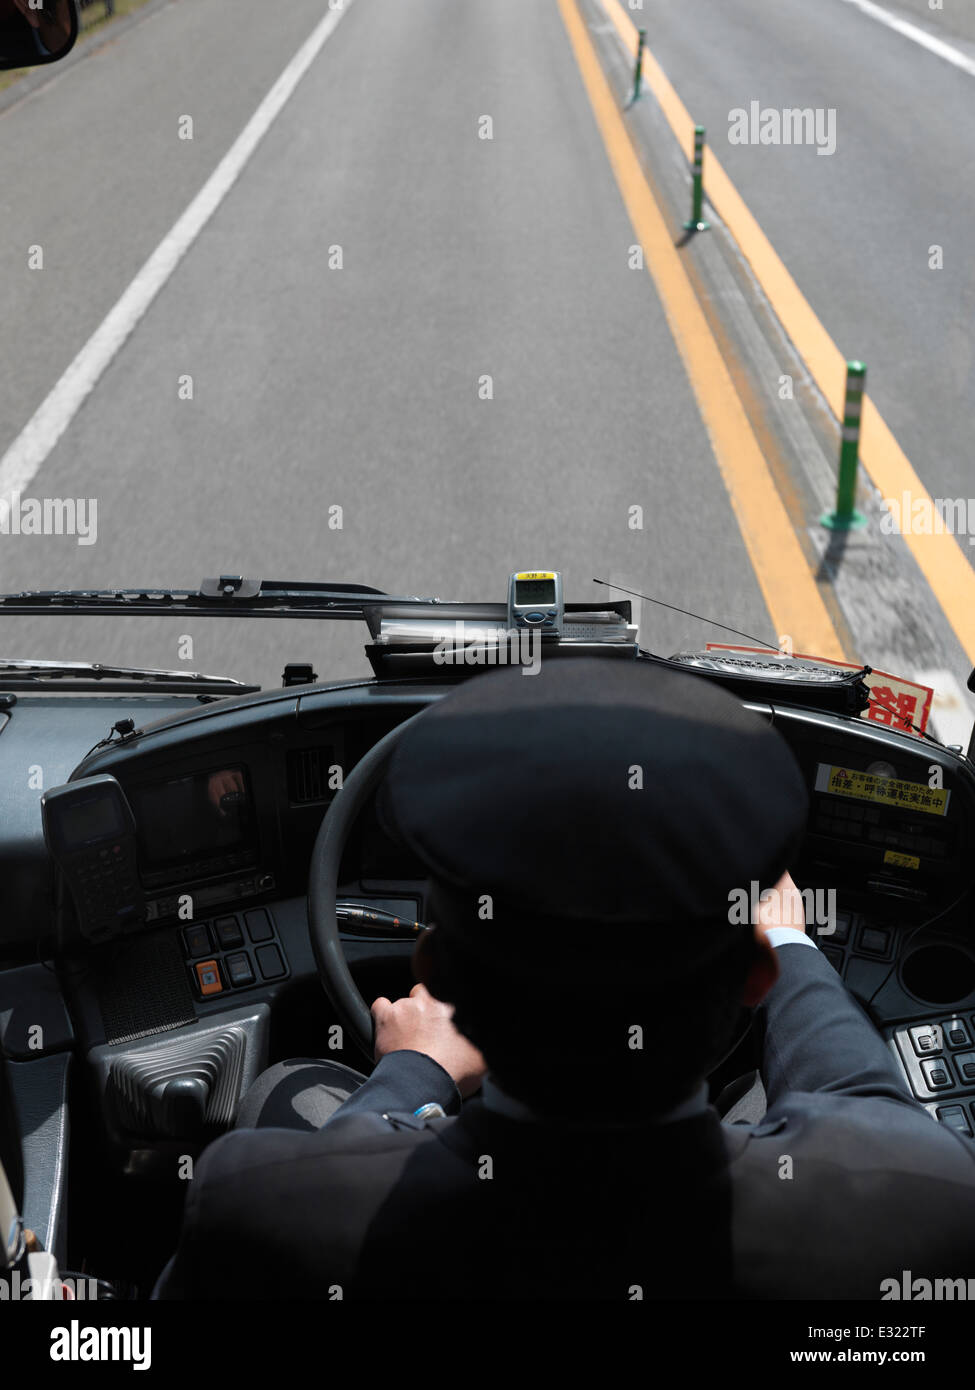 Bus driver at a steering wheel driving on a highway, high angle view. Japan. - Stock Image